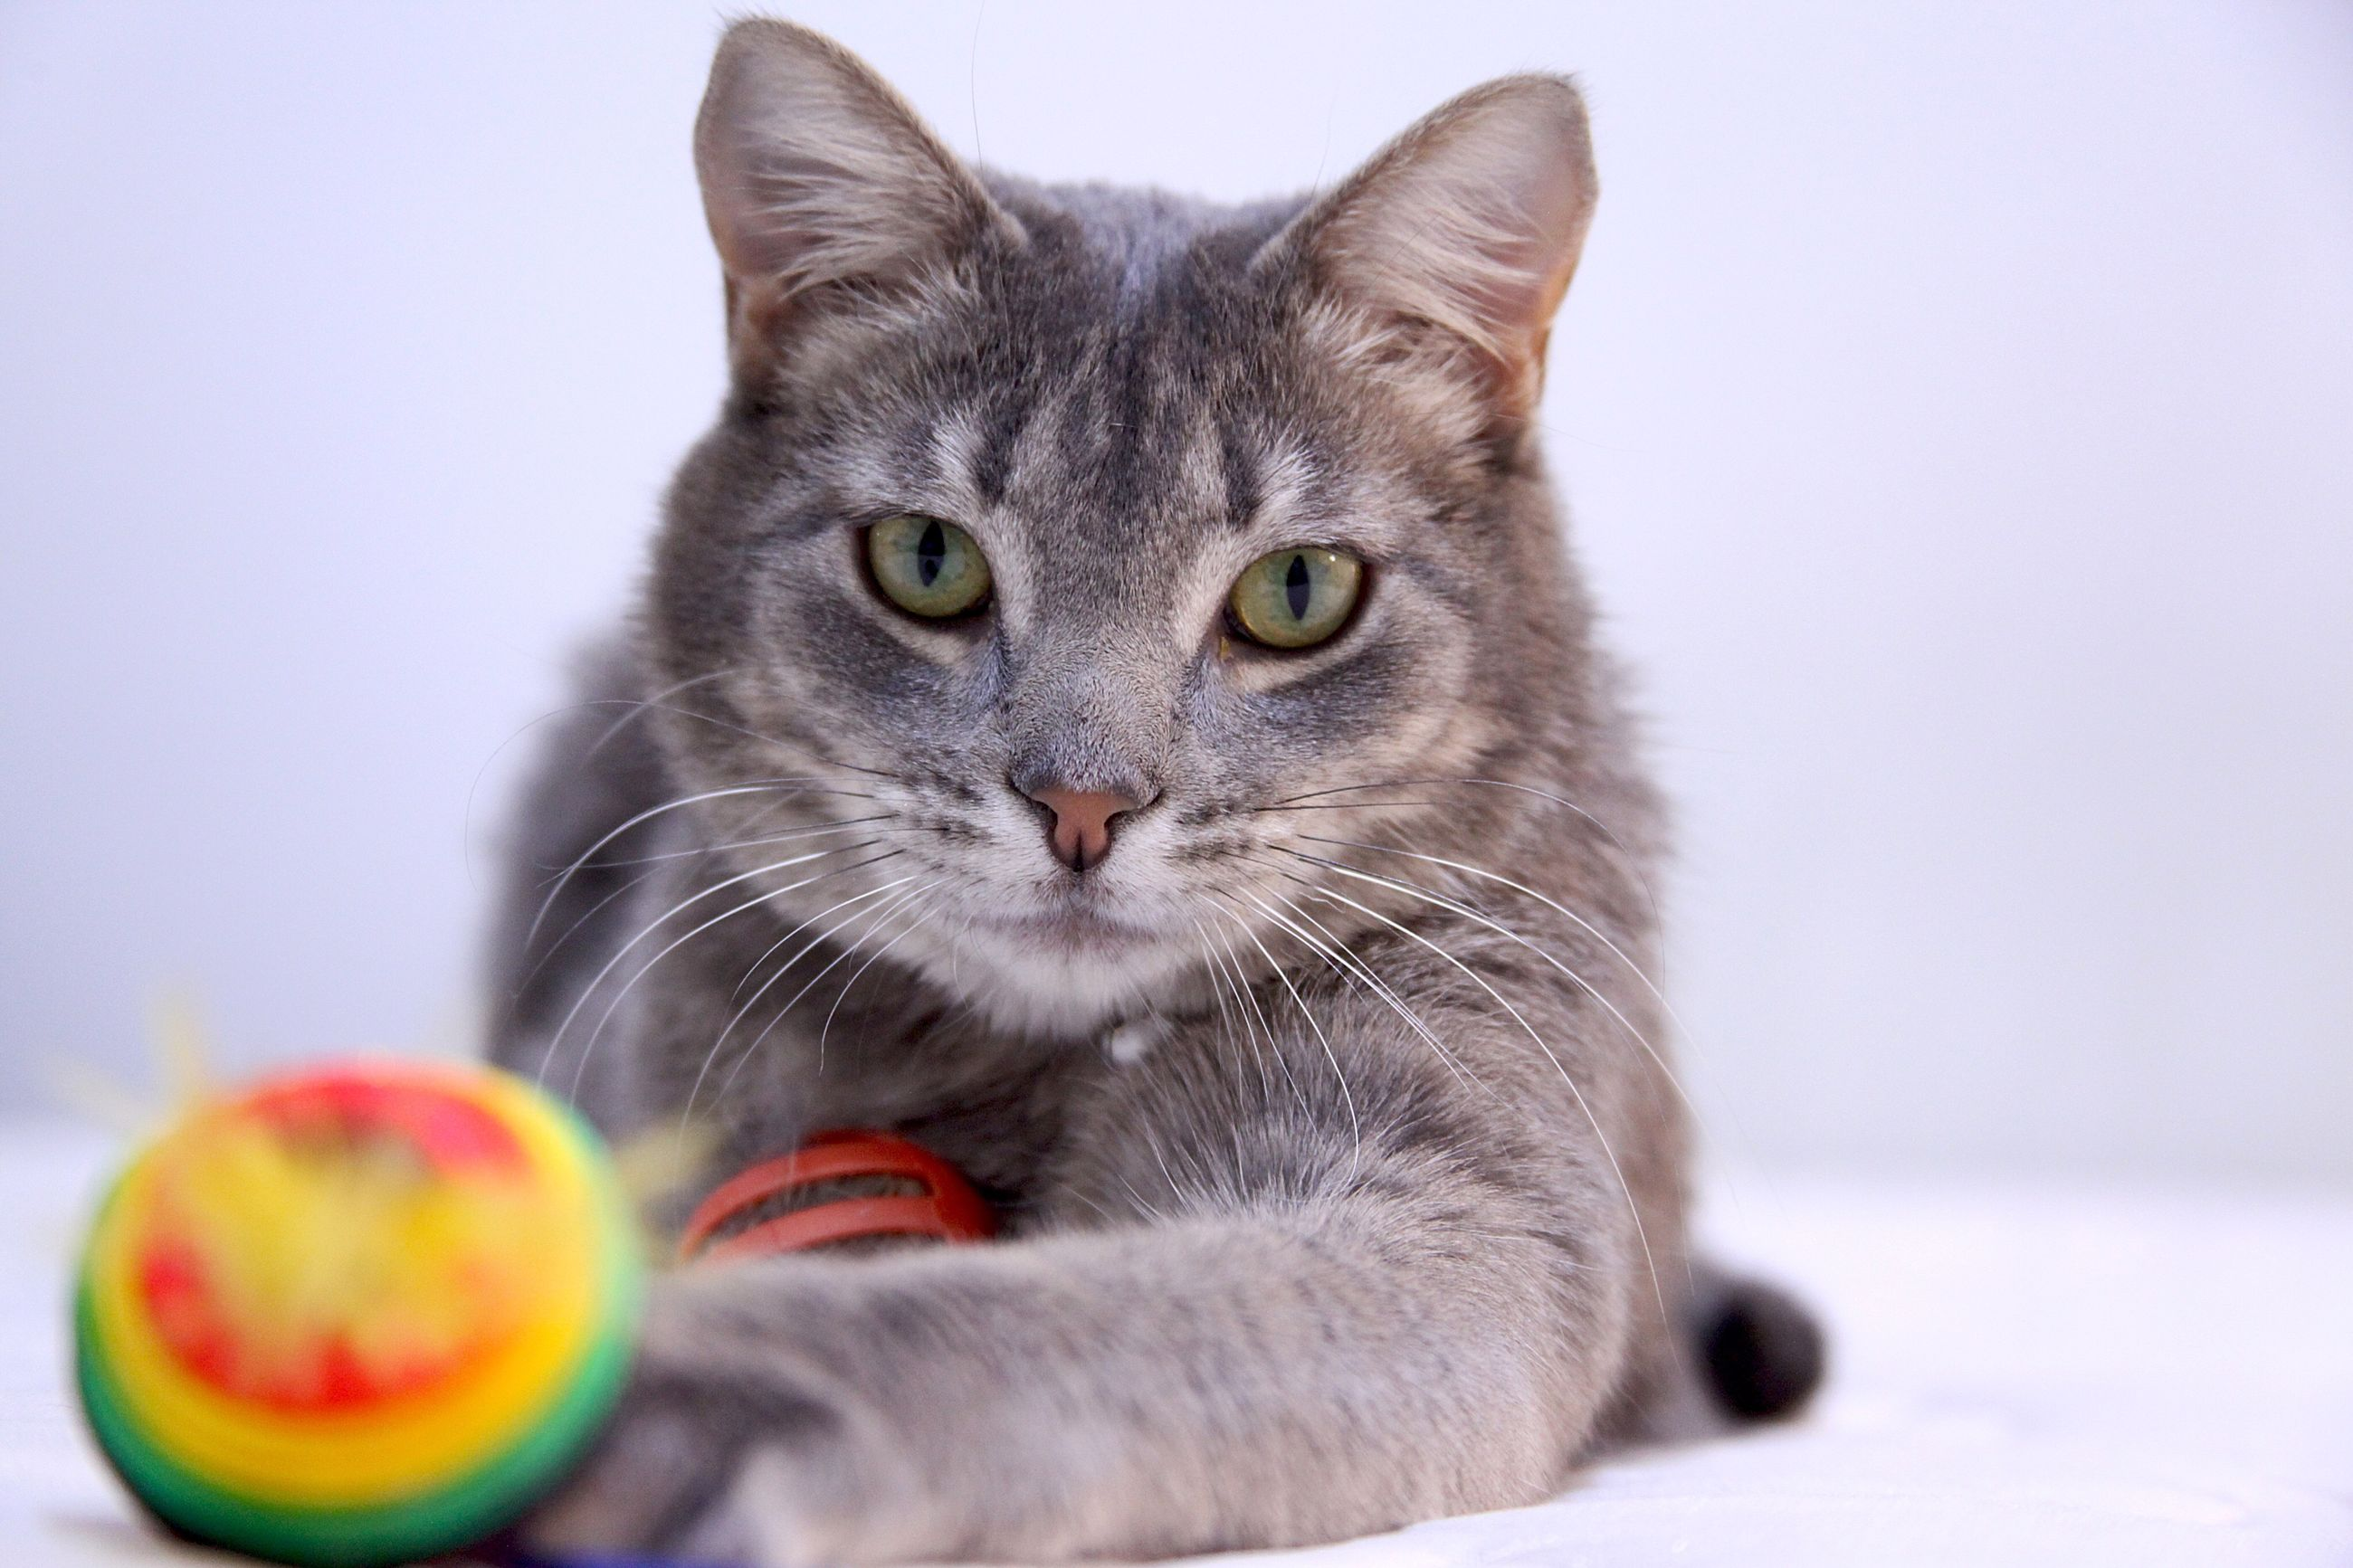 animal themes, domestic animals, pets, one animal, domestic cat, mammal, cat, close-up, indoors, looking at camera, portrait, studio shot, whisker, feline, white background, focus on foreground, animal eye, animal head, no people